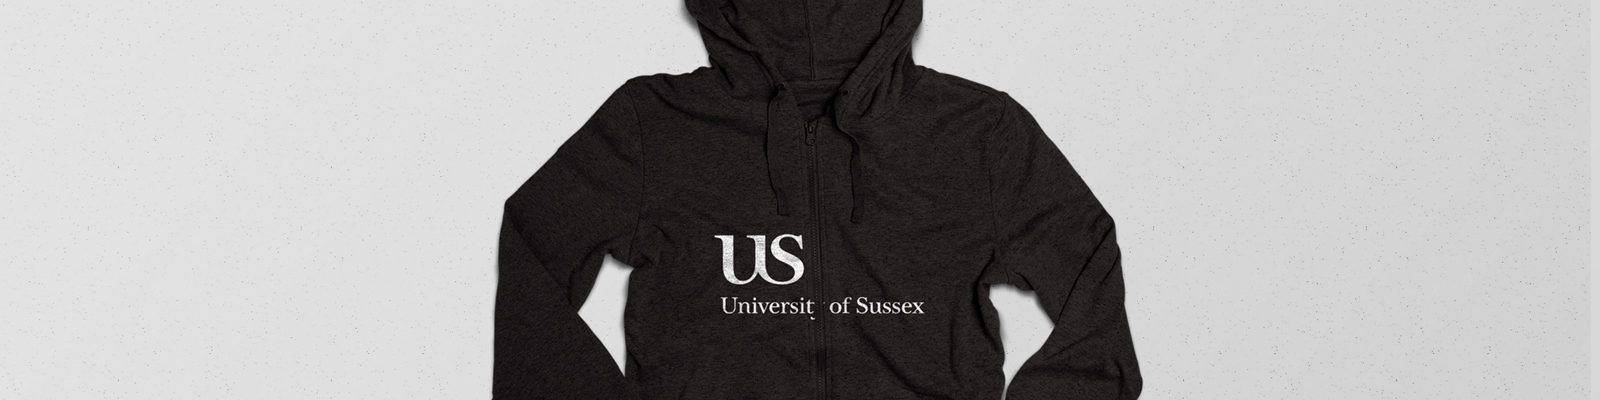 Printed Hoodies for University Societies Attract Attention at Events - Header Image